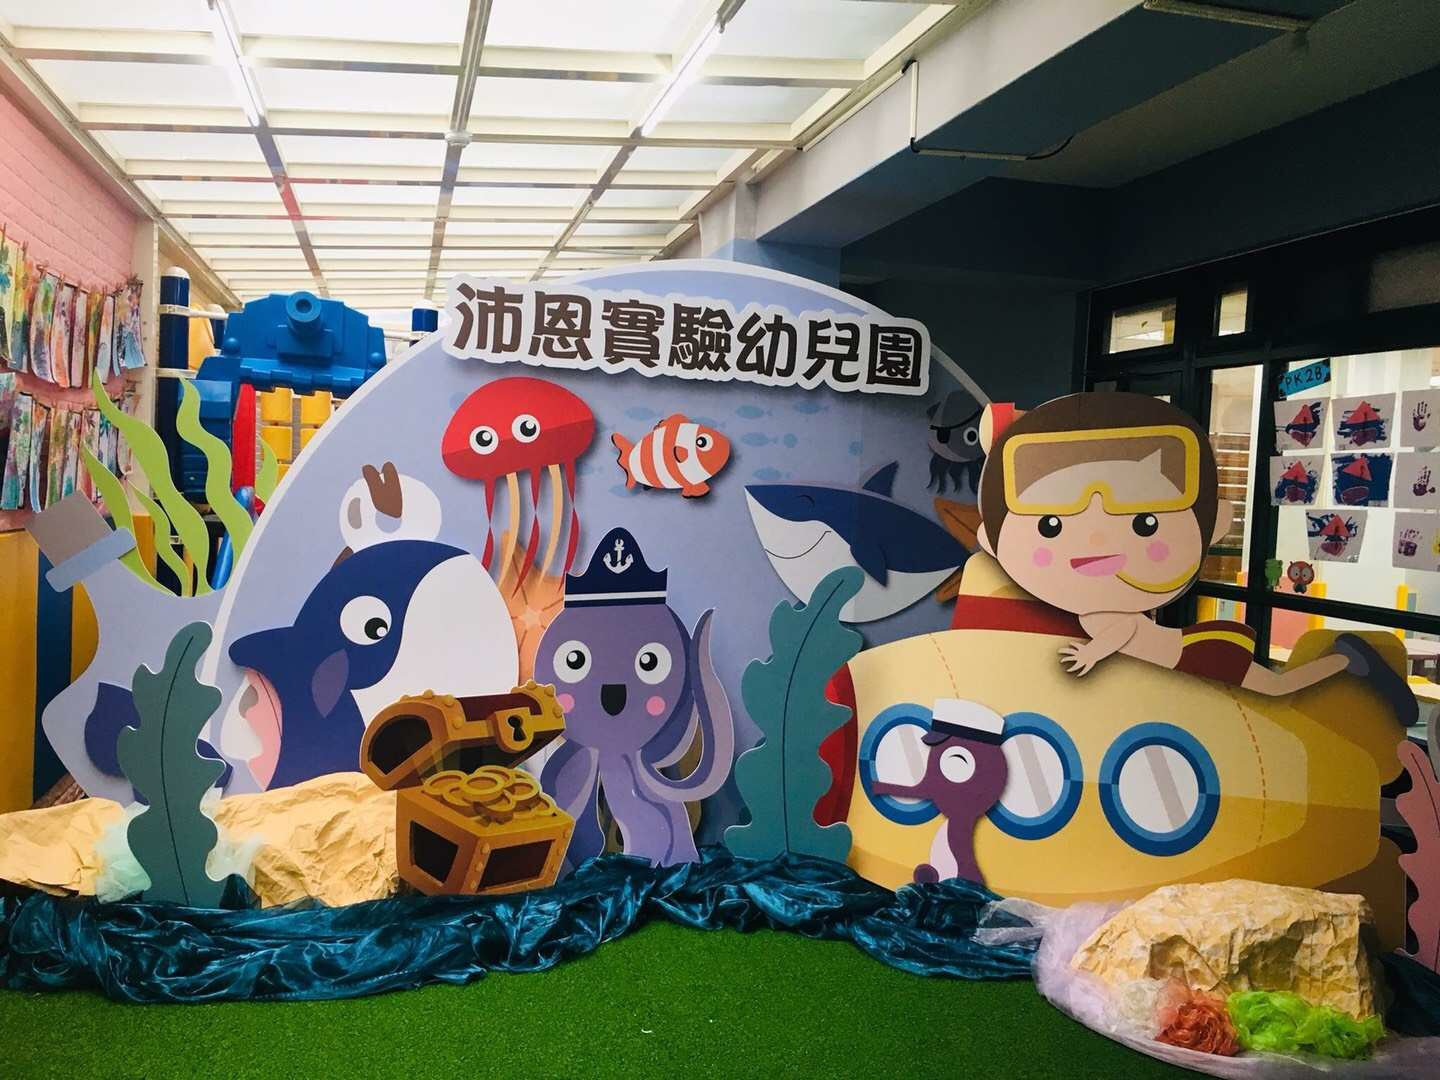 Case Study: Under the Sea Family Day